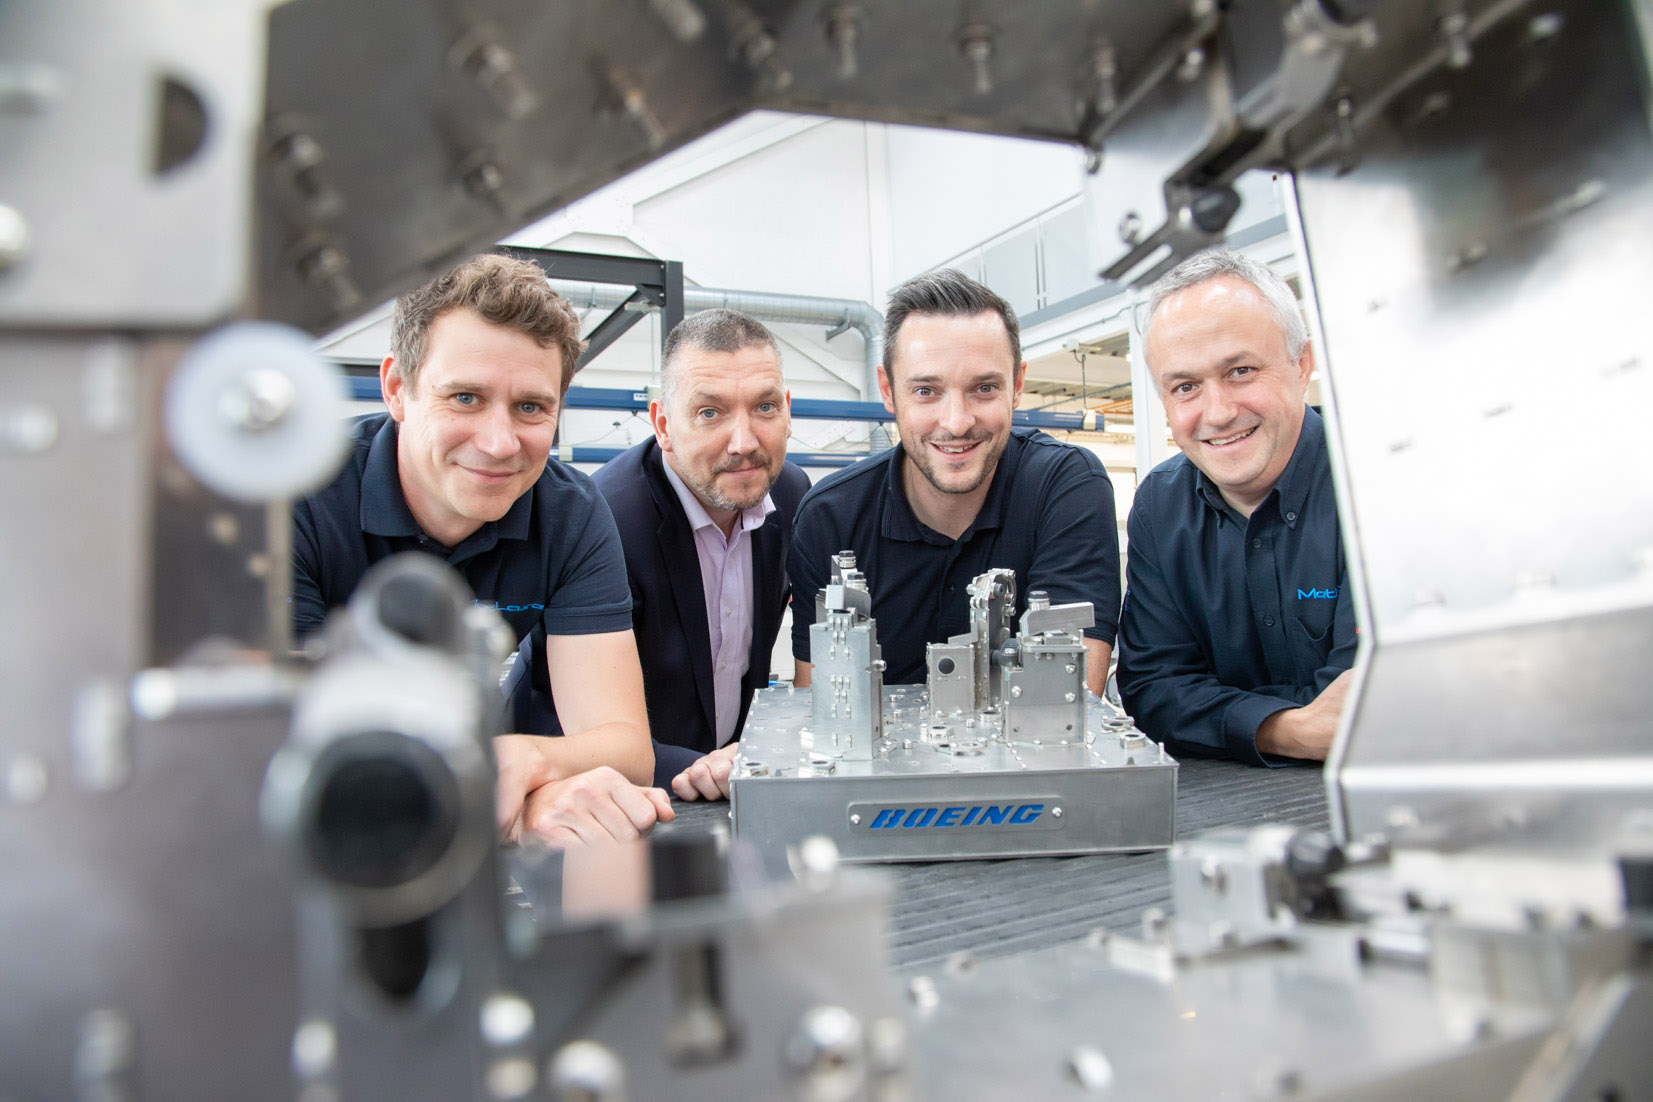 (l-r) Sam Simpson (Principal Engineer at MetLase), Steve Dunn (Managing Director at MetLase), James Needham (Senior Operations Manager at Boeing Sheffield) and Richard Gould (Sales Manager at MetLase)